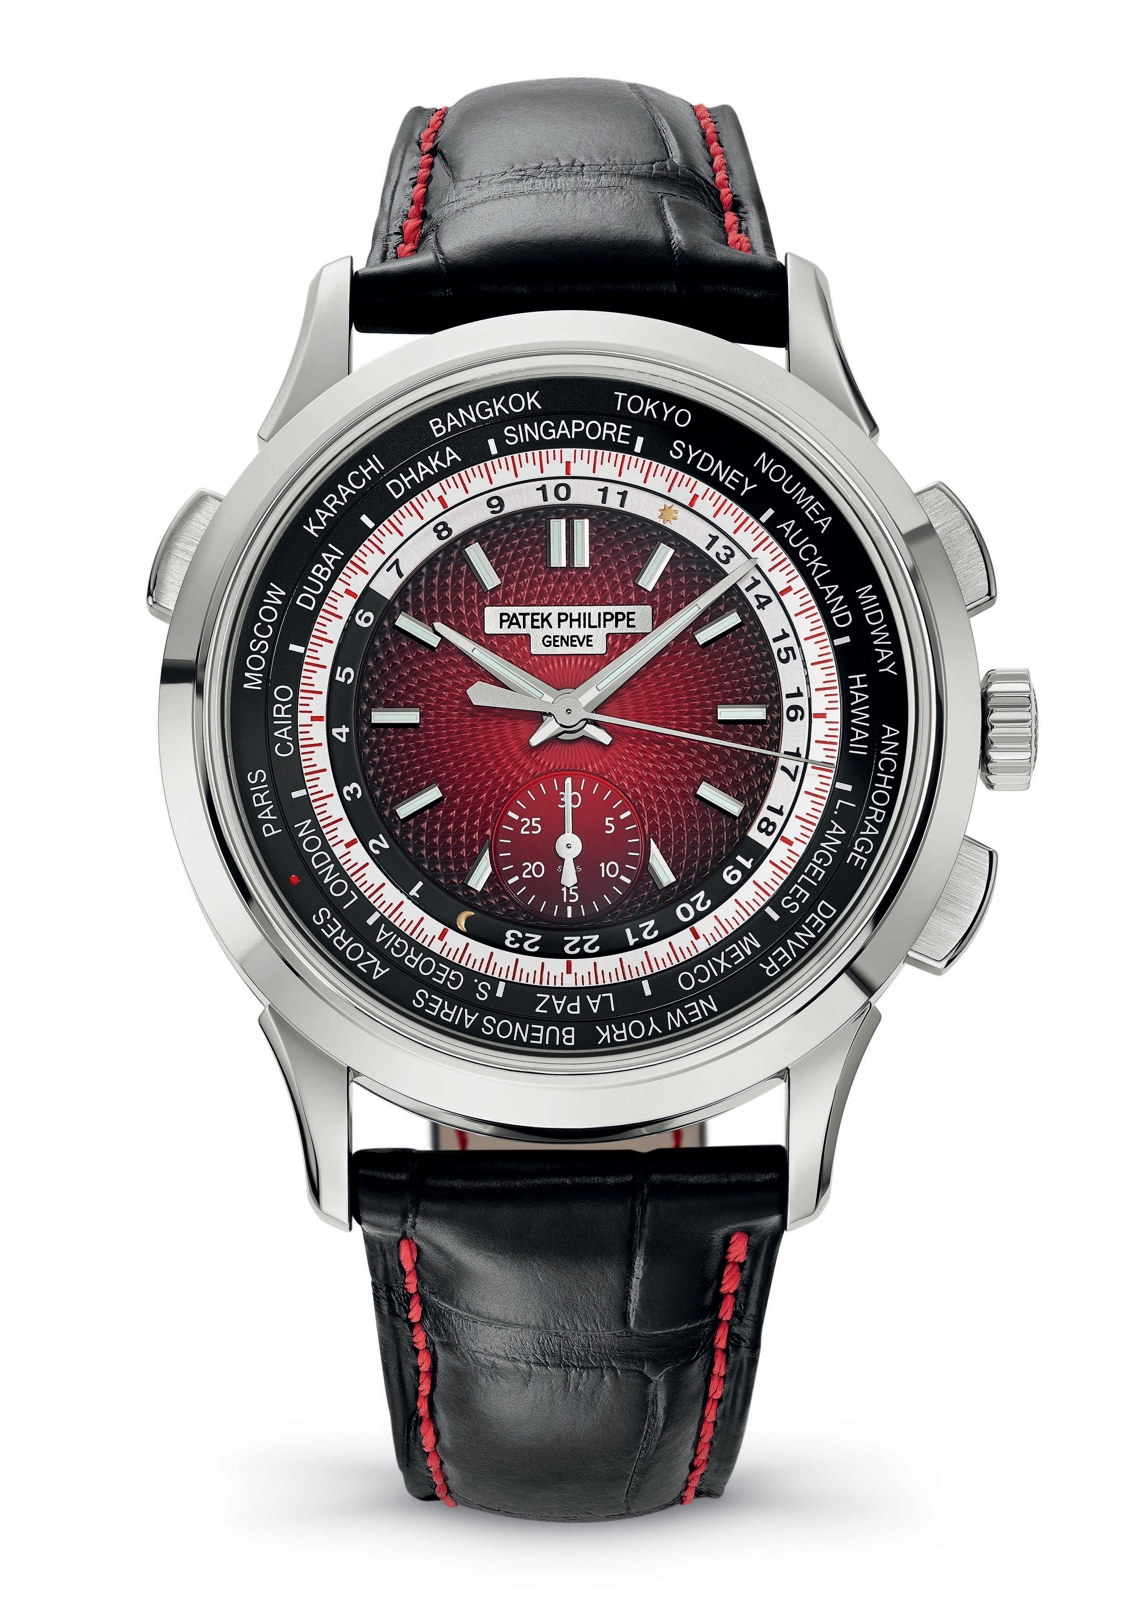 Patek Philippe Singapore 2019 Special Editions - 5930G-011 - front